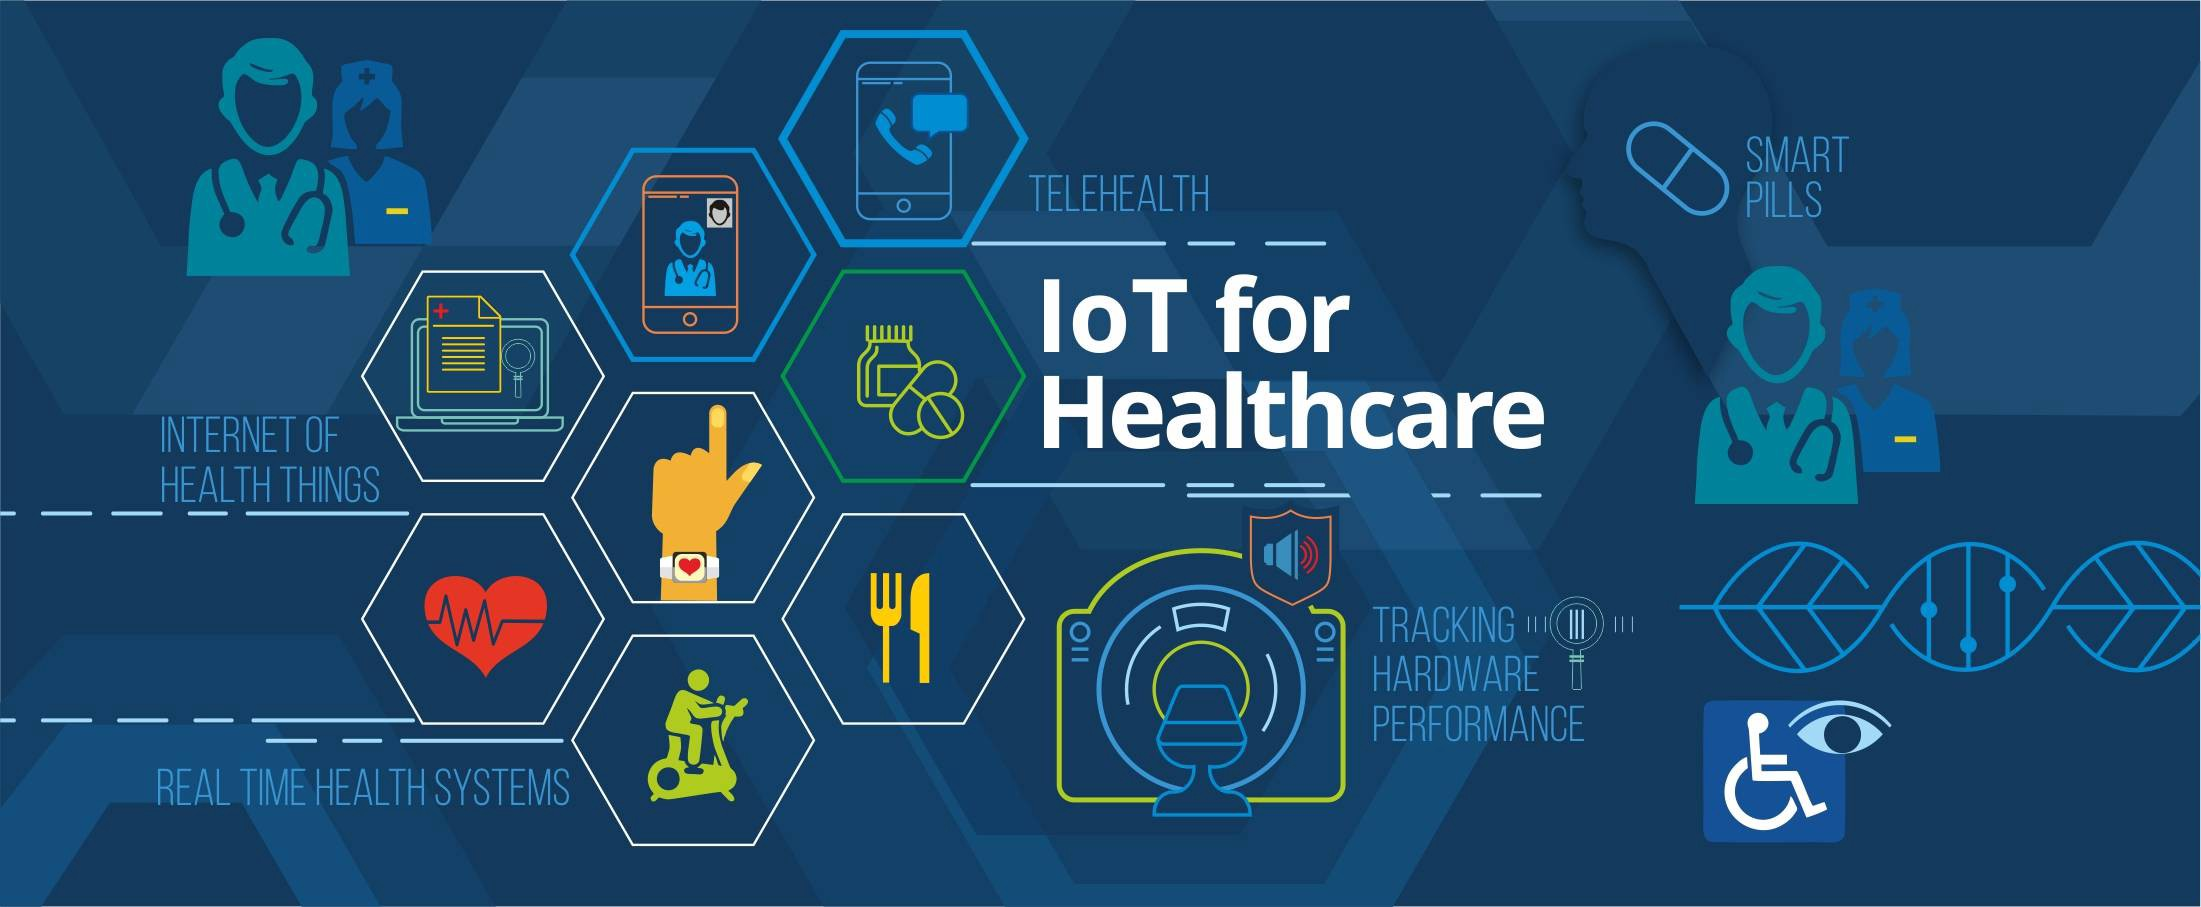 Healthcare IT Industry: Market Drivers and Trends Analysis